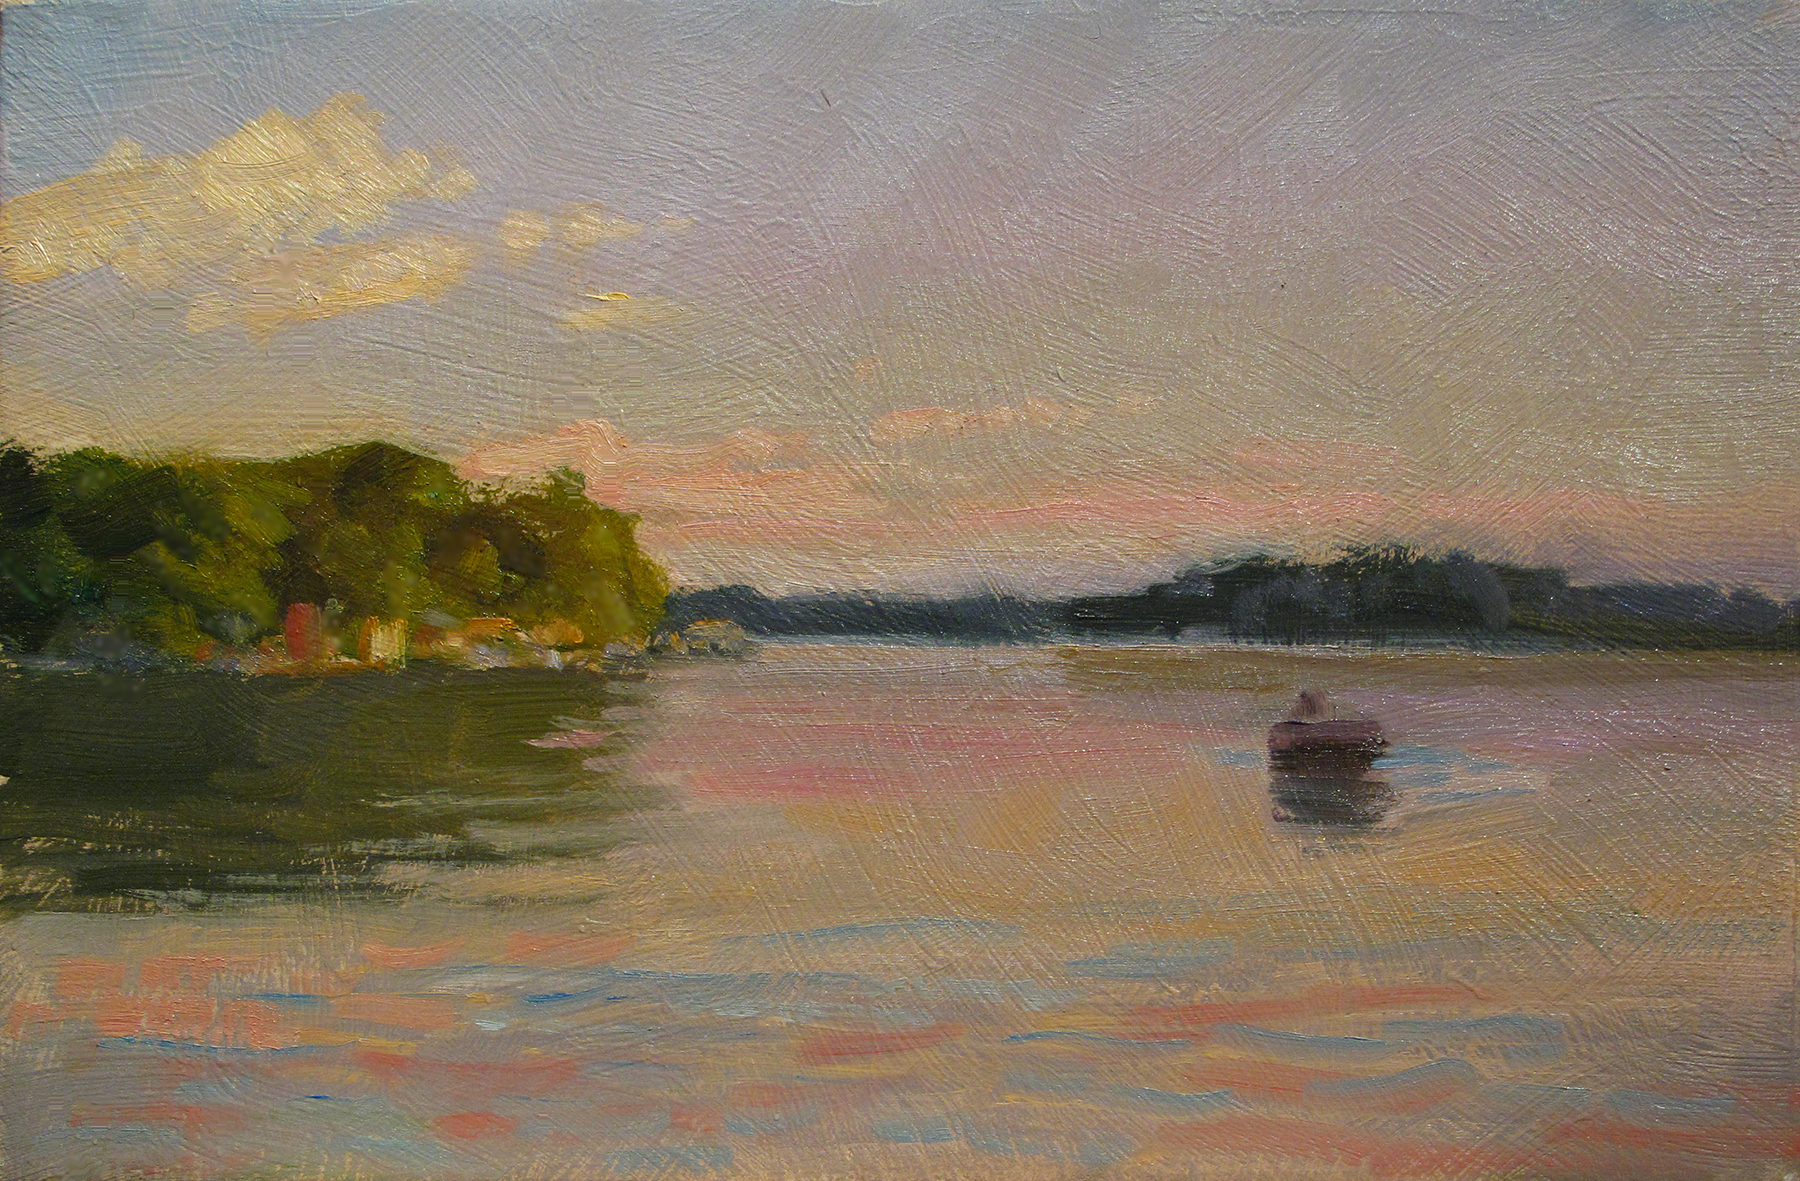 "Done Fishin""'    7 x 11 oil on panel  Painted on location on Lake Fannie near Cambridge, Minnesota."